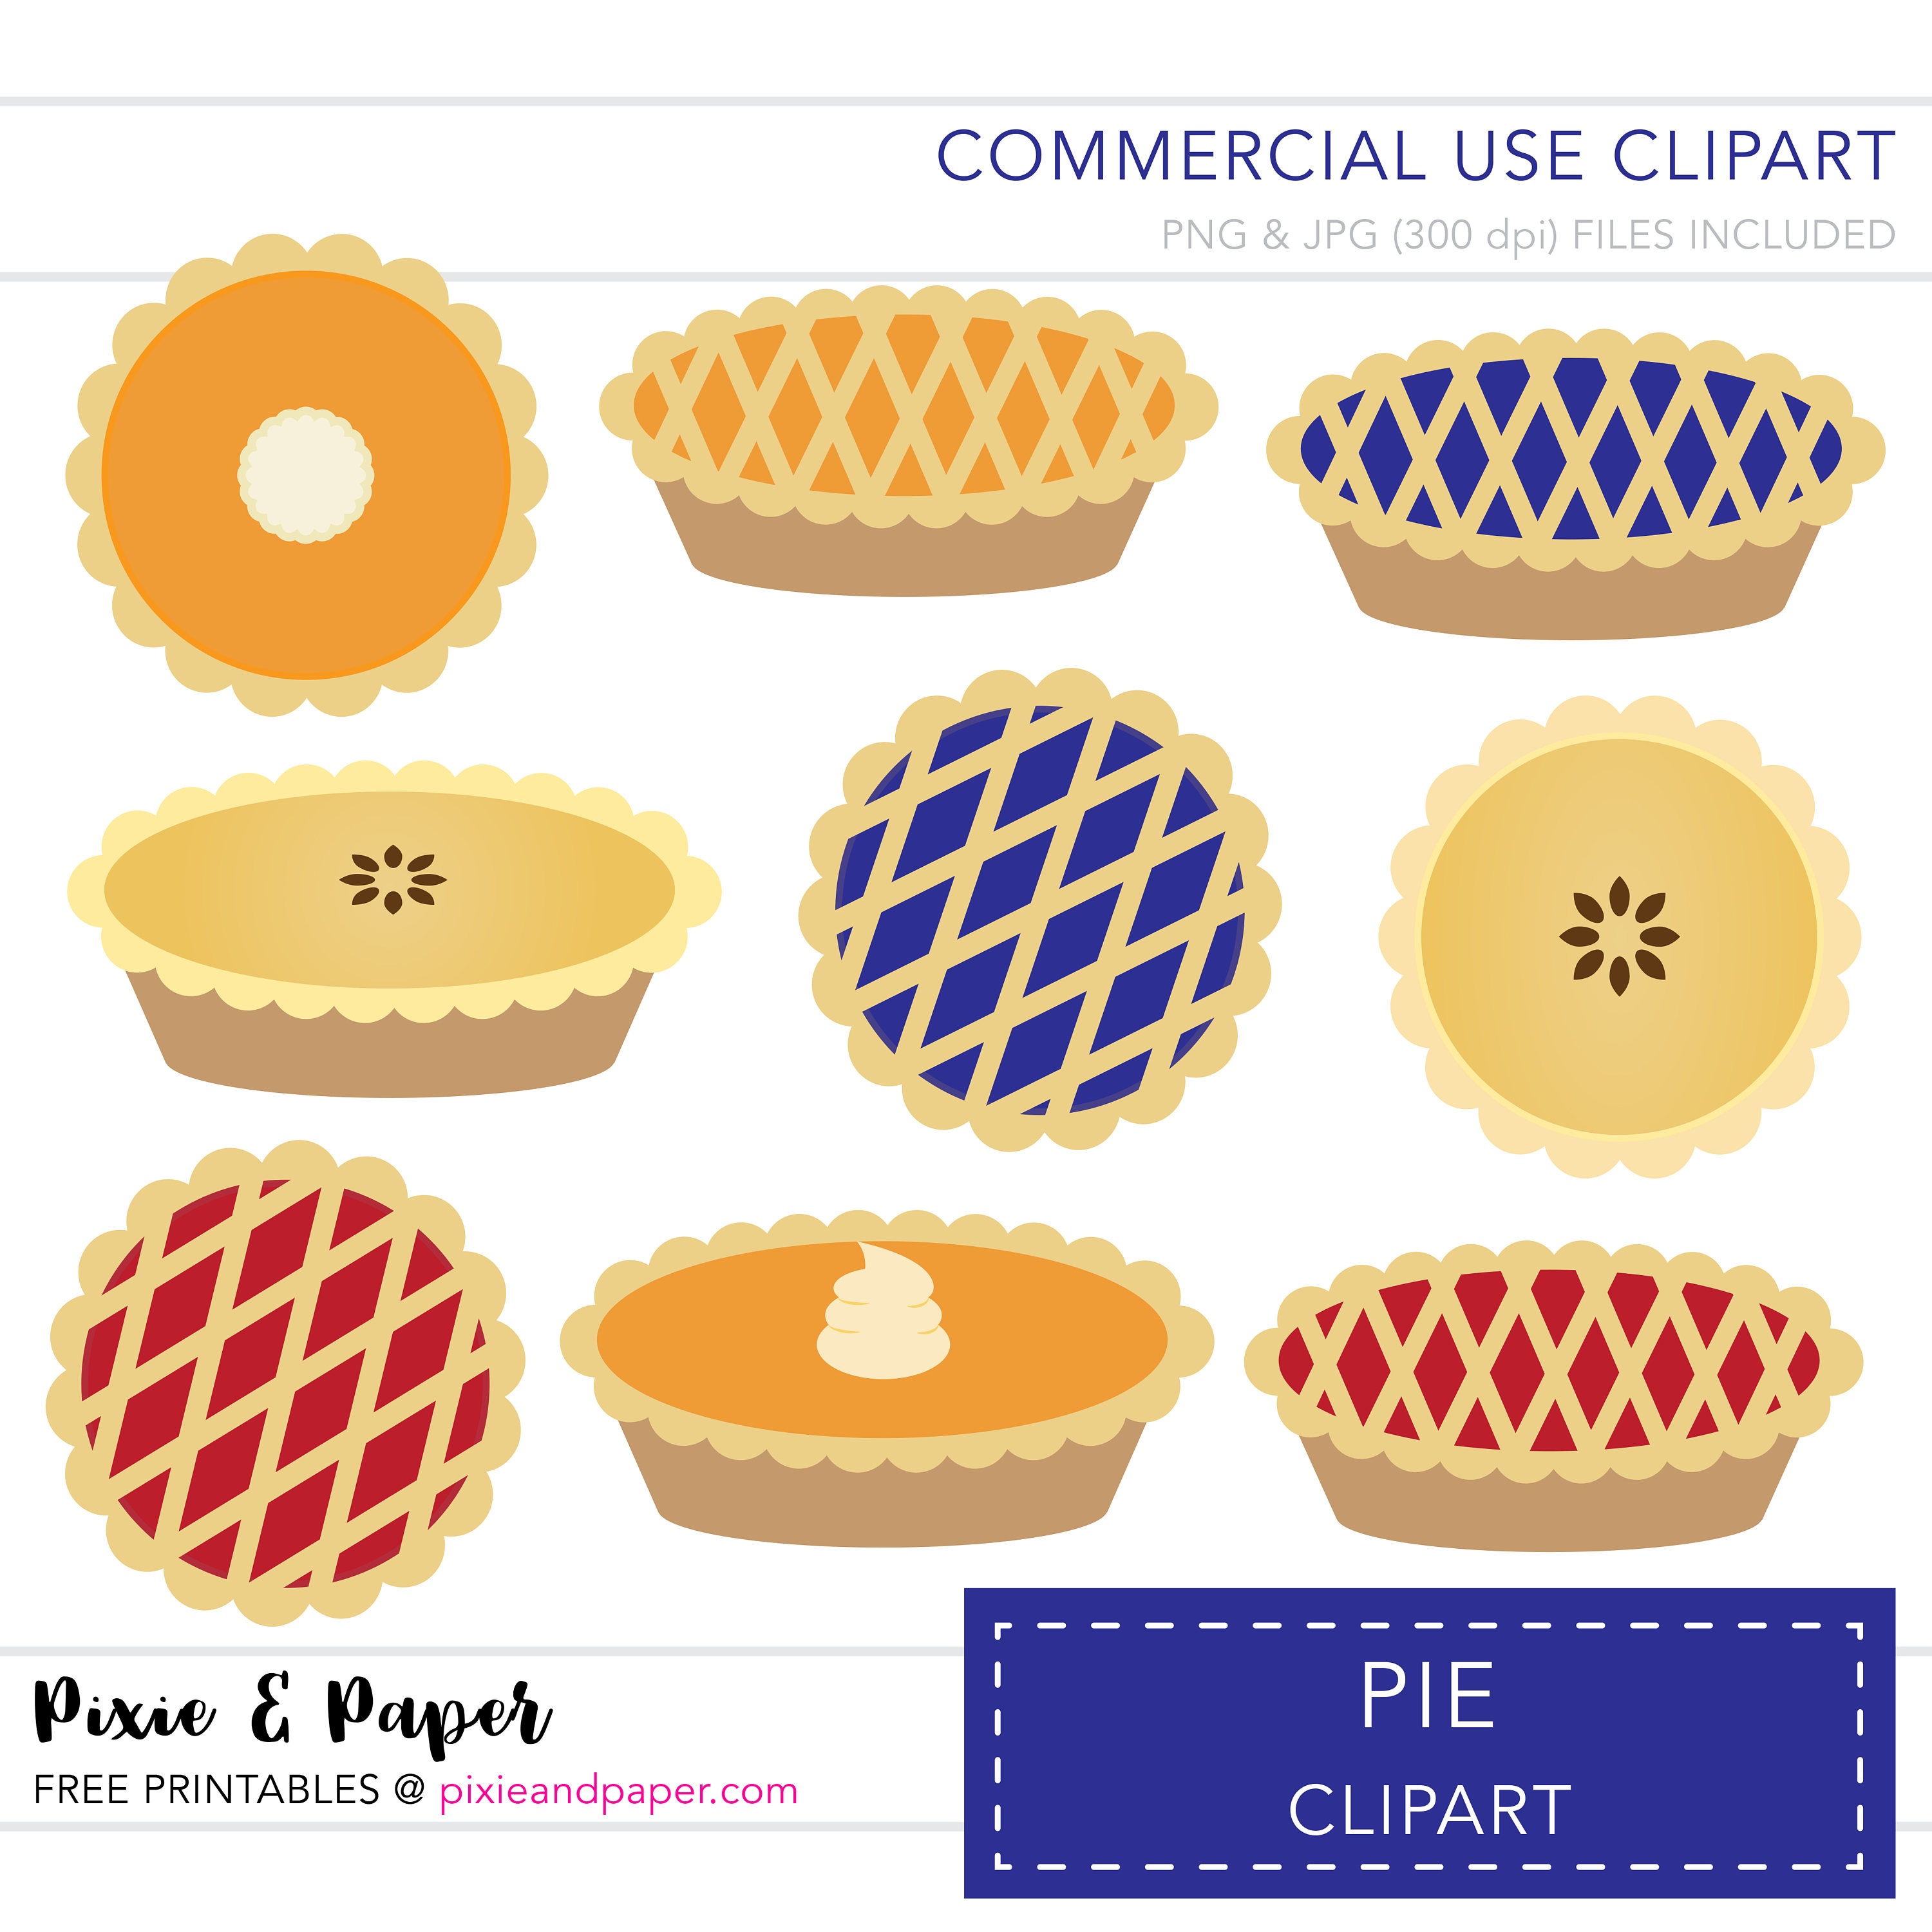 Pie clipart dessert Use a Commercial digital Clipart